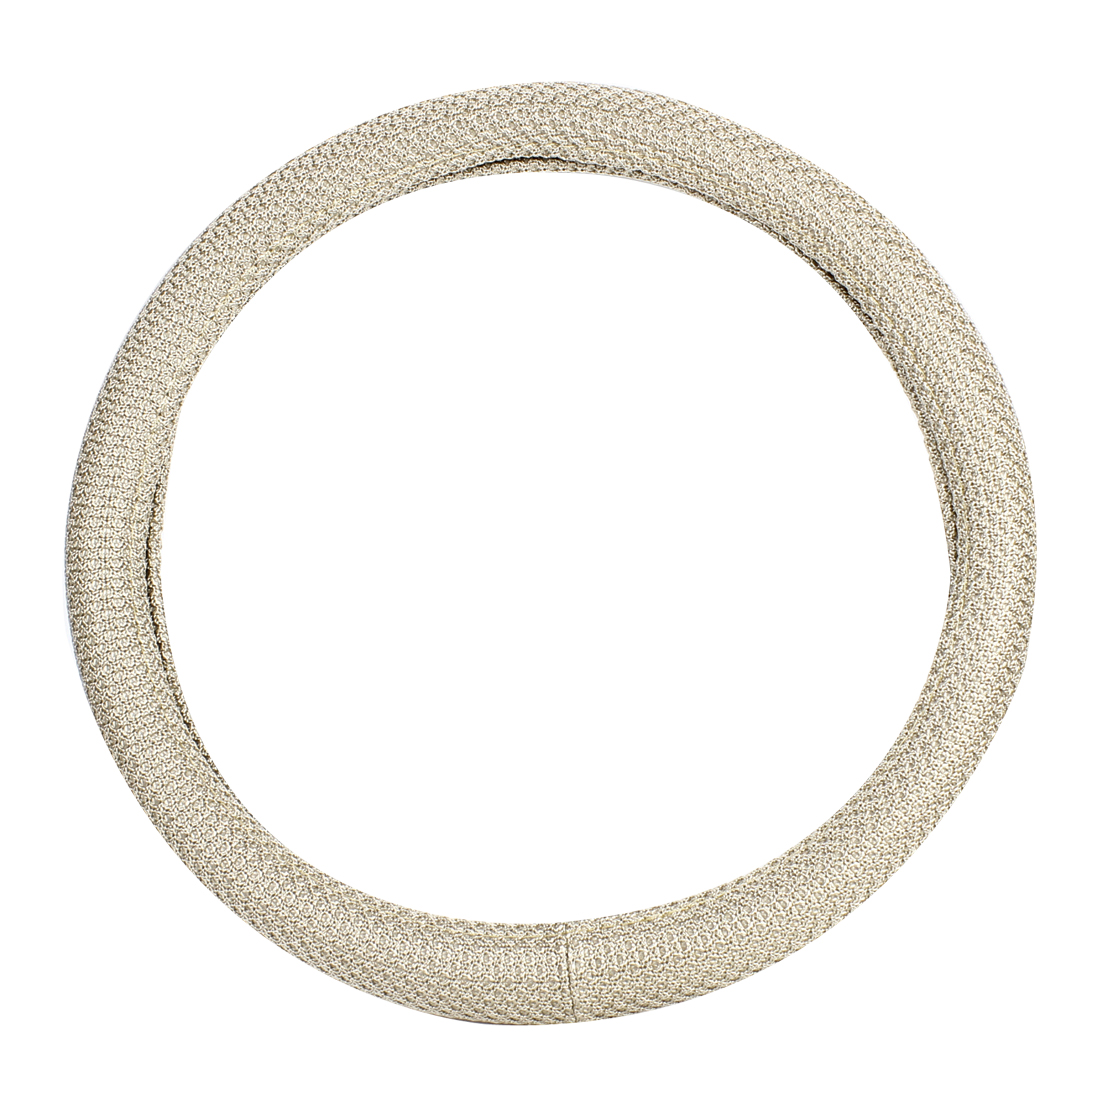 38cm Dia Beige Knitted Design Steering Wheel Cover Protector for Car